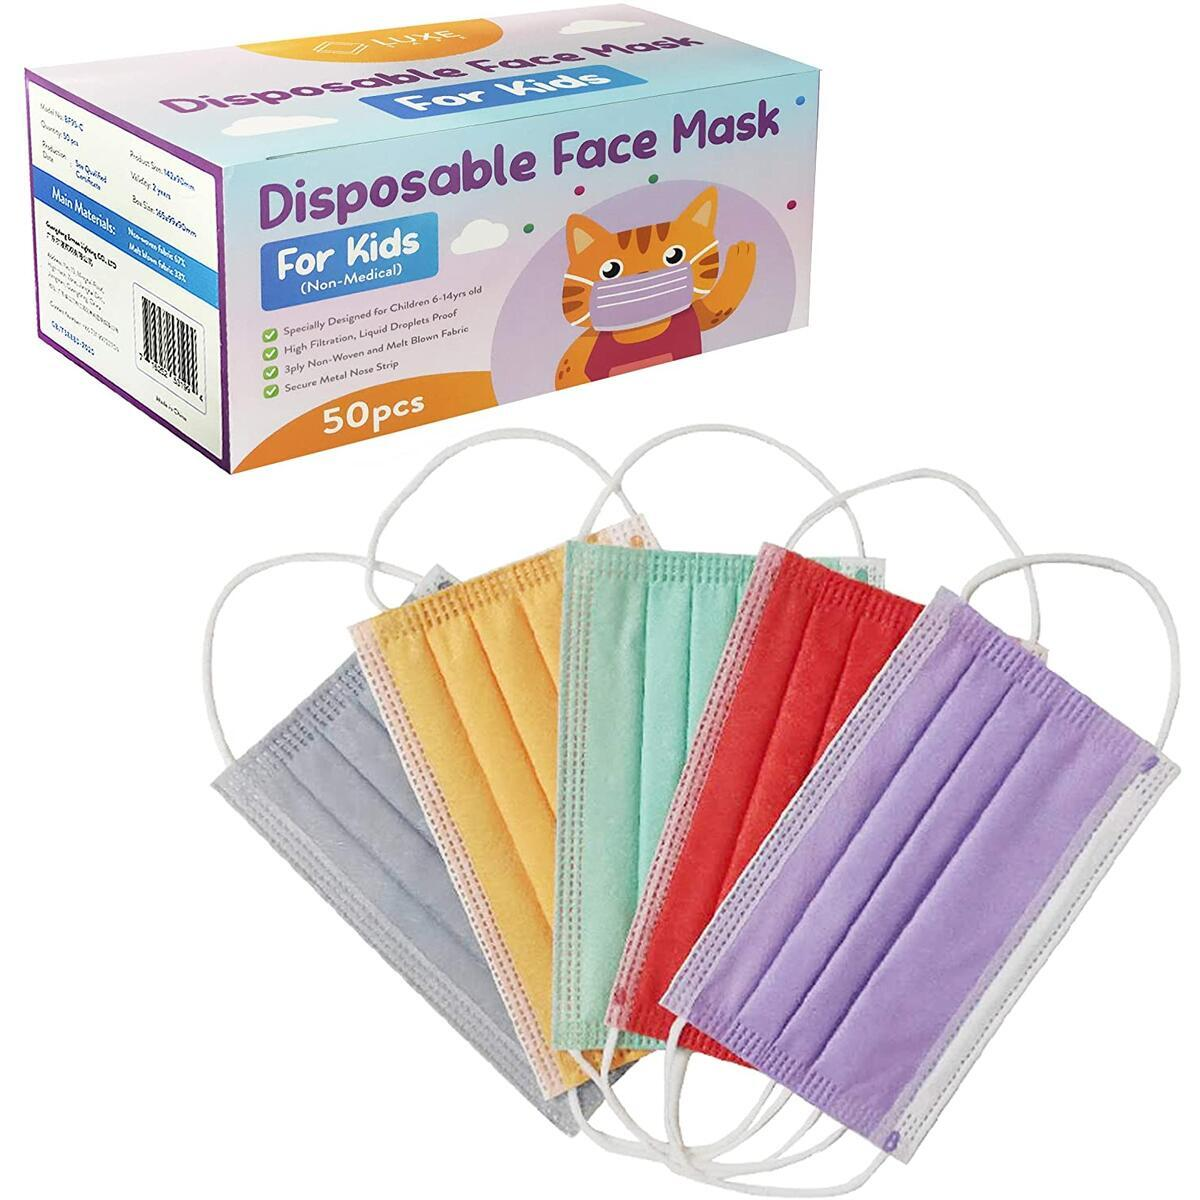 Children Disposable Face Masks (50ct) Multicolor, Kids Saturated Single Color, 3ply